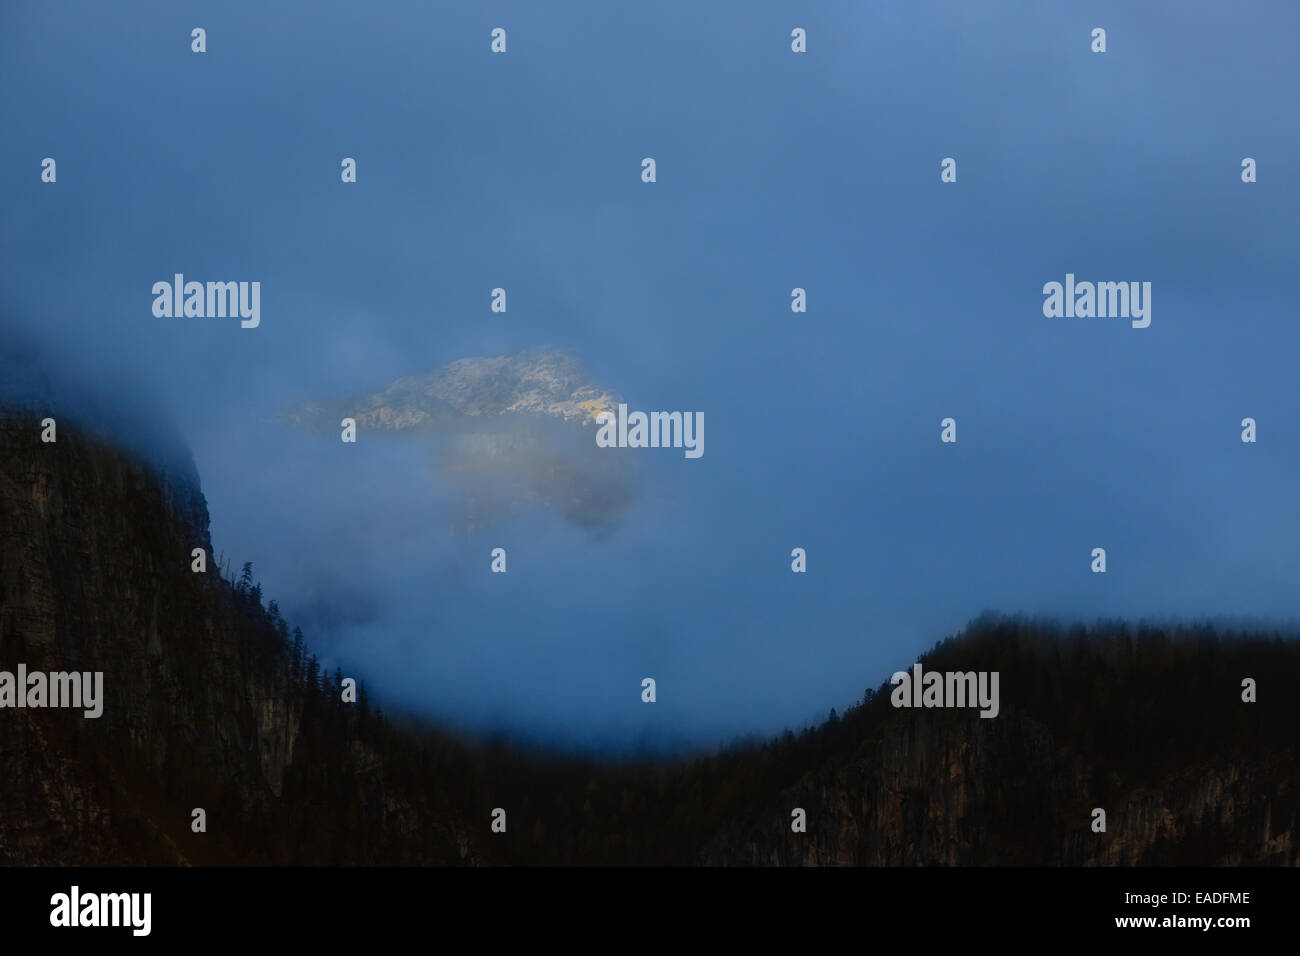 Mountain peak illuminated by beams of a rising sun in clouds gap - Stock Image